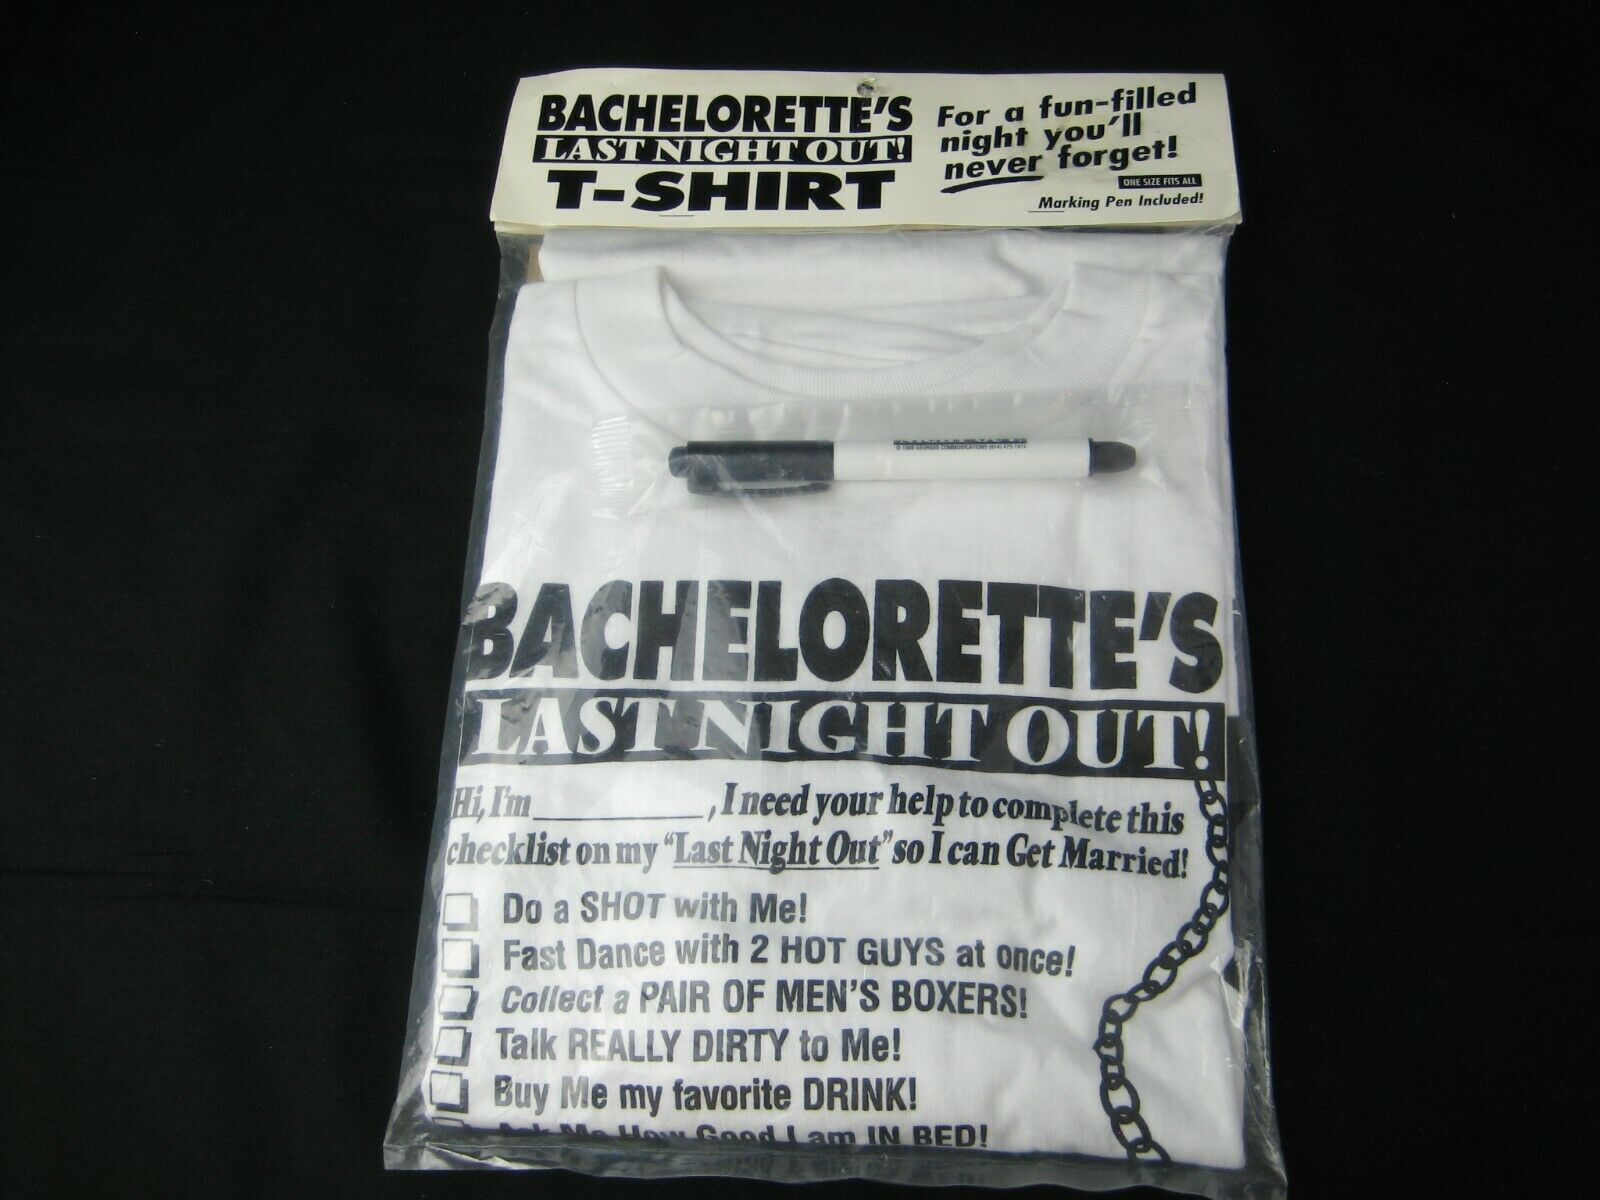 Wedding-Bachelorette's Last Night Out Funny Tee Shirt with Marking Pen -One Size